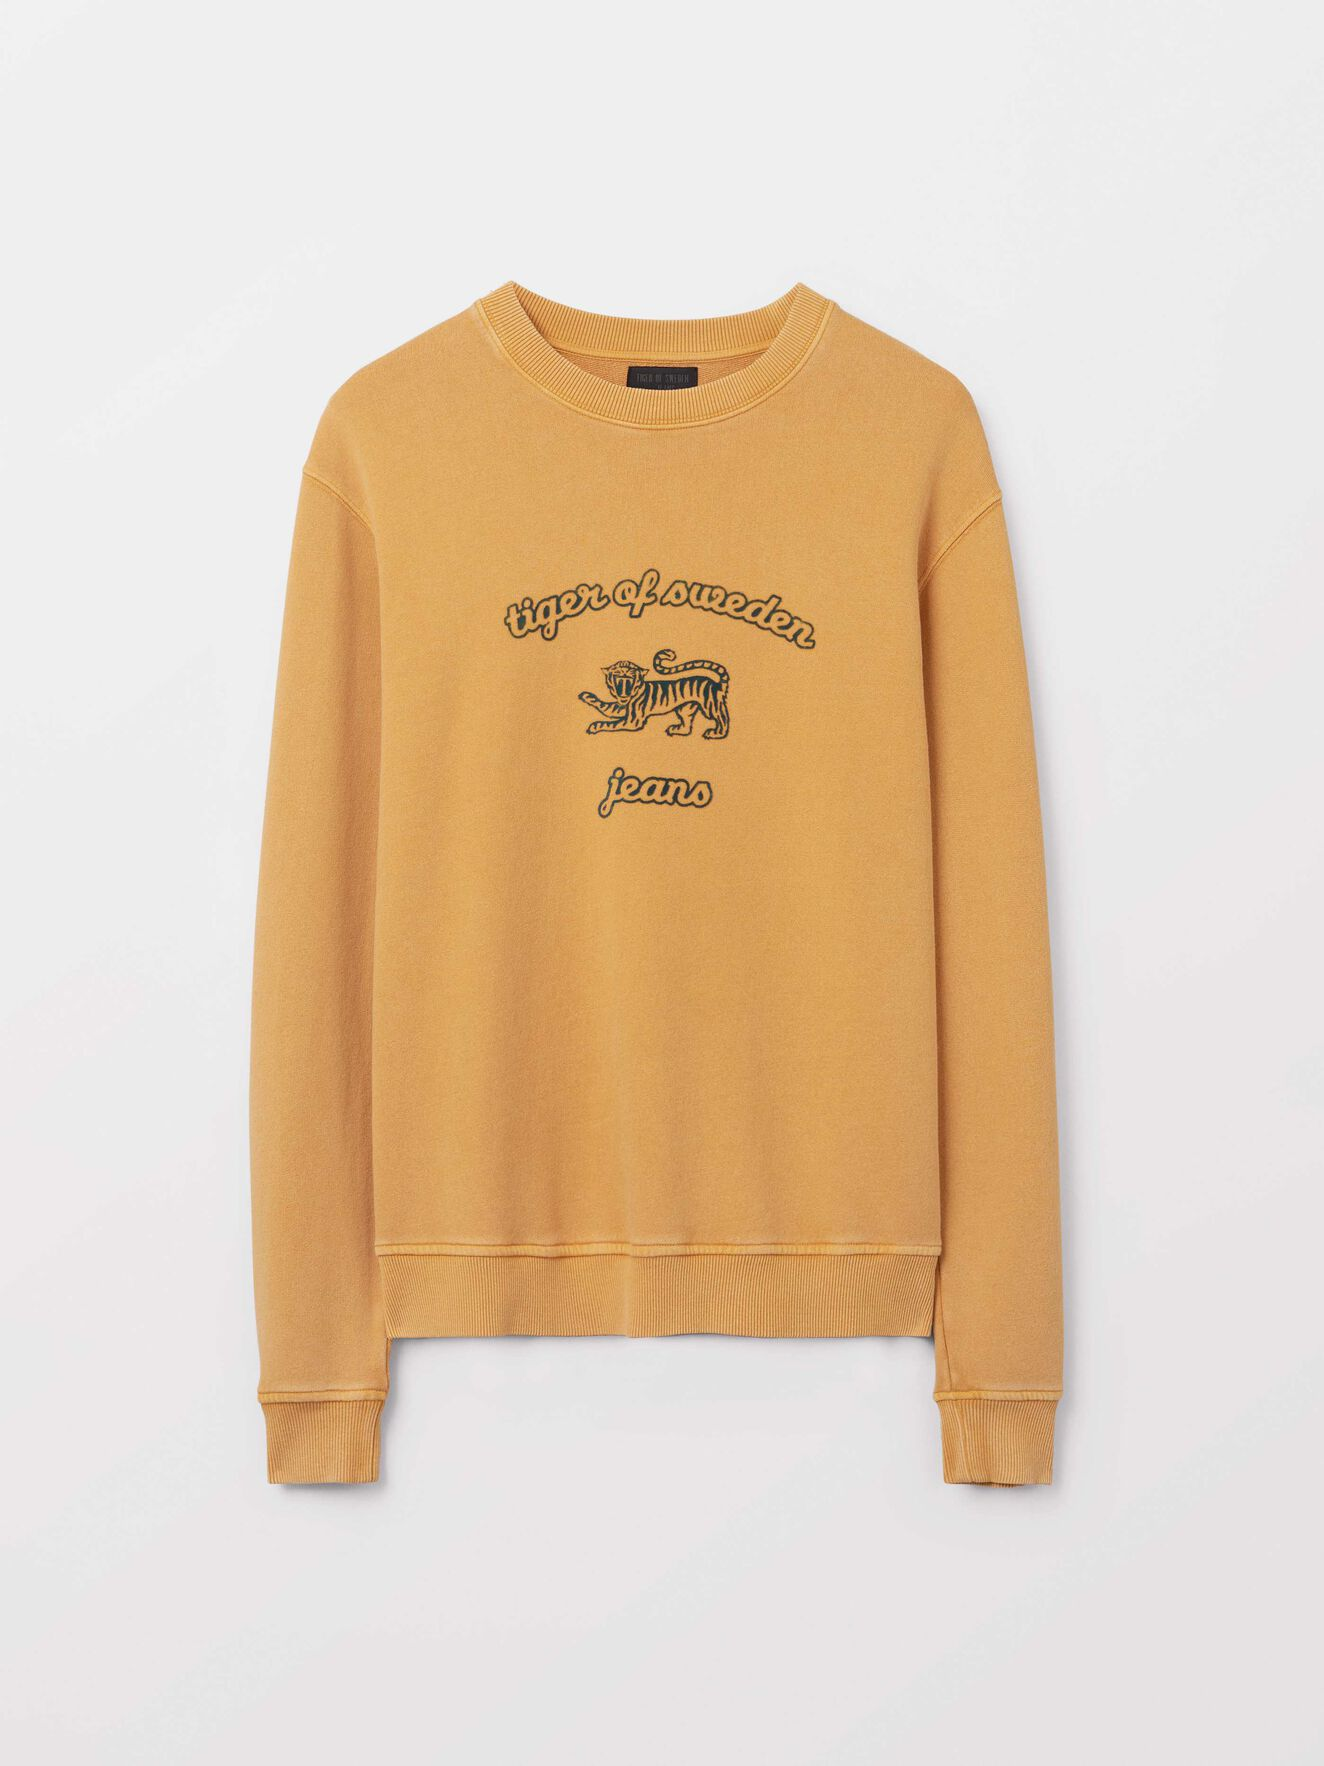 Tana O Sweatshirt in Mustard from Tiger of Sweden